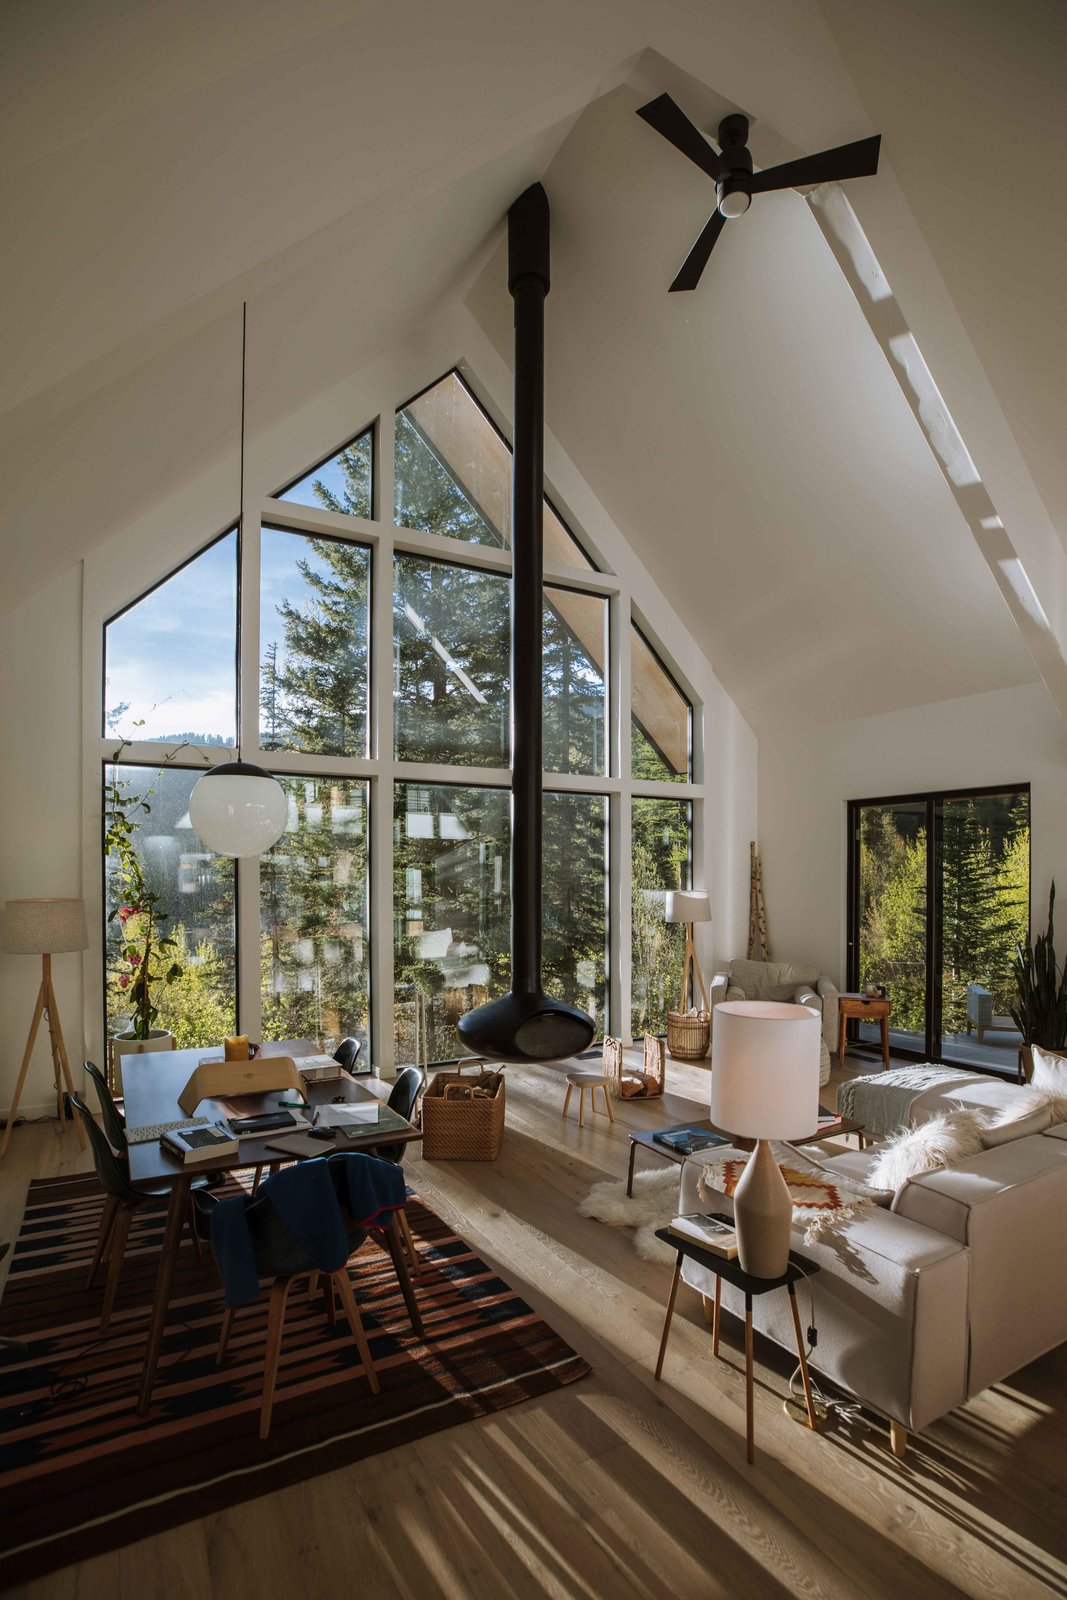 "Living, Chair, Sectional, Hanging, Lamps, Sofa, Pendant, Light Hardwood, Rug, and Wood Burning At Alex Strohl and Andrea Dabene's Nooq House in the Rocky Mountains of northwest Montana, highlights include a suspended fireplace, cathedral ceilings, and expansive windows. ""The windows are my favorite feature. I've loved seeing the colors change in the fall, snow in the winter, and bears in the spring,"" says Andrea.  Living Sectional Lamps Photos from A Pair of Adventurous Photographers Open the Doors of Their Epic Mountain Hideaway"